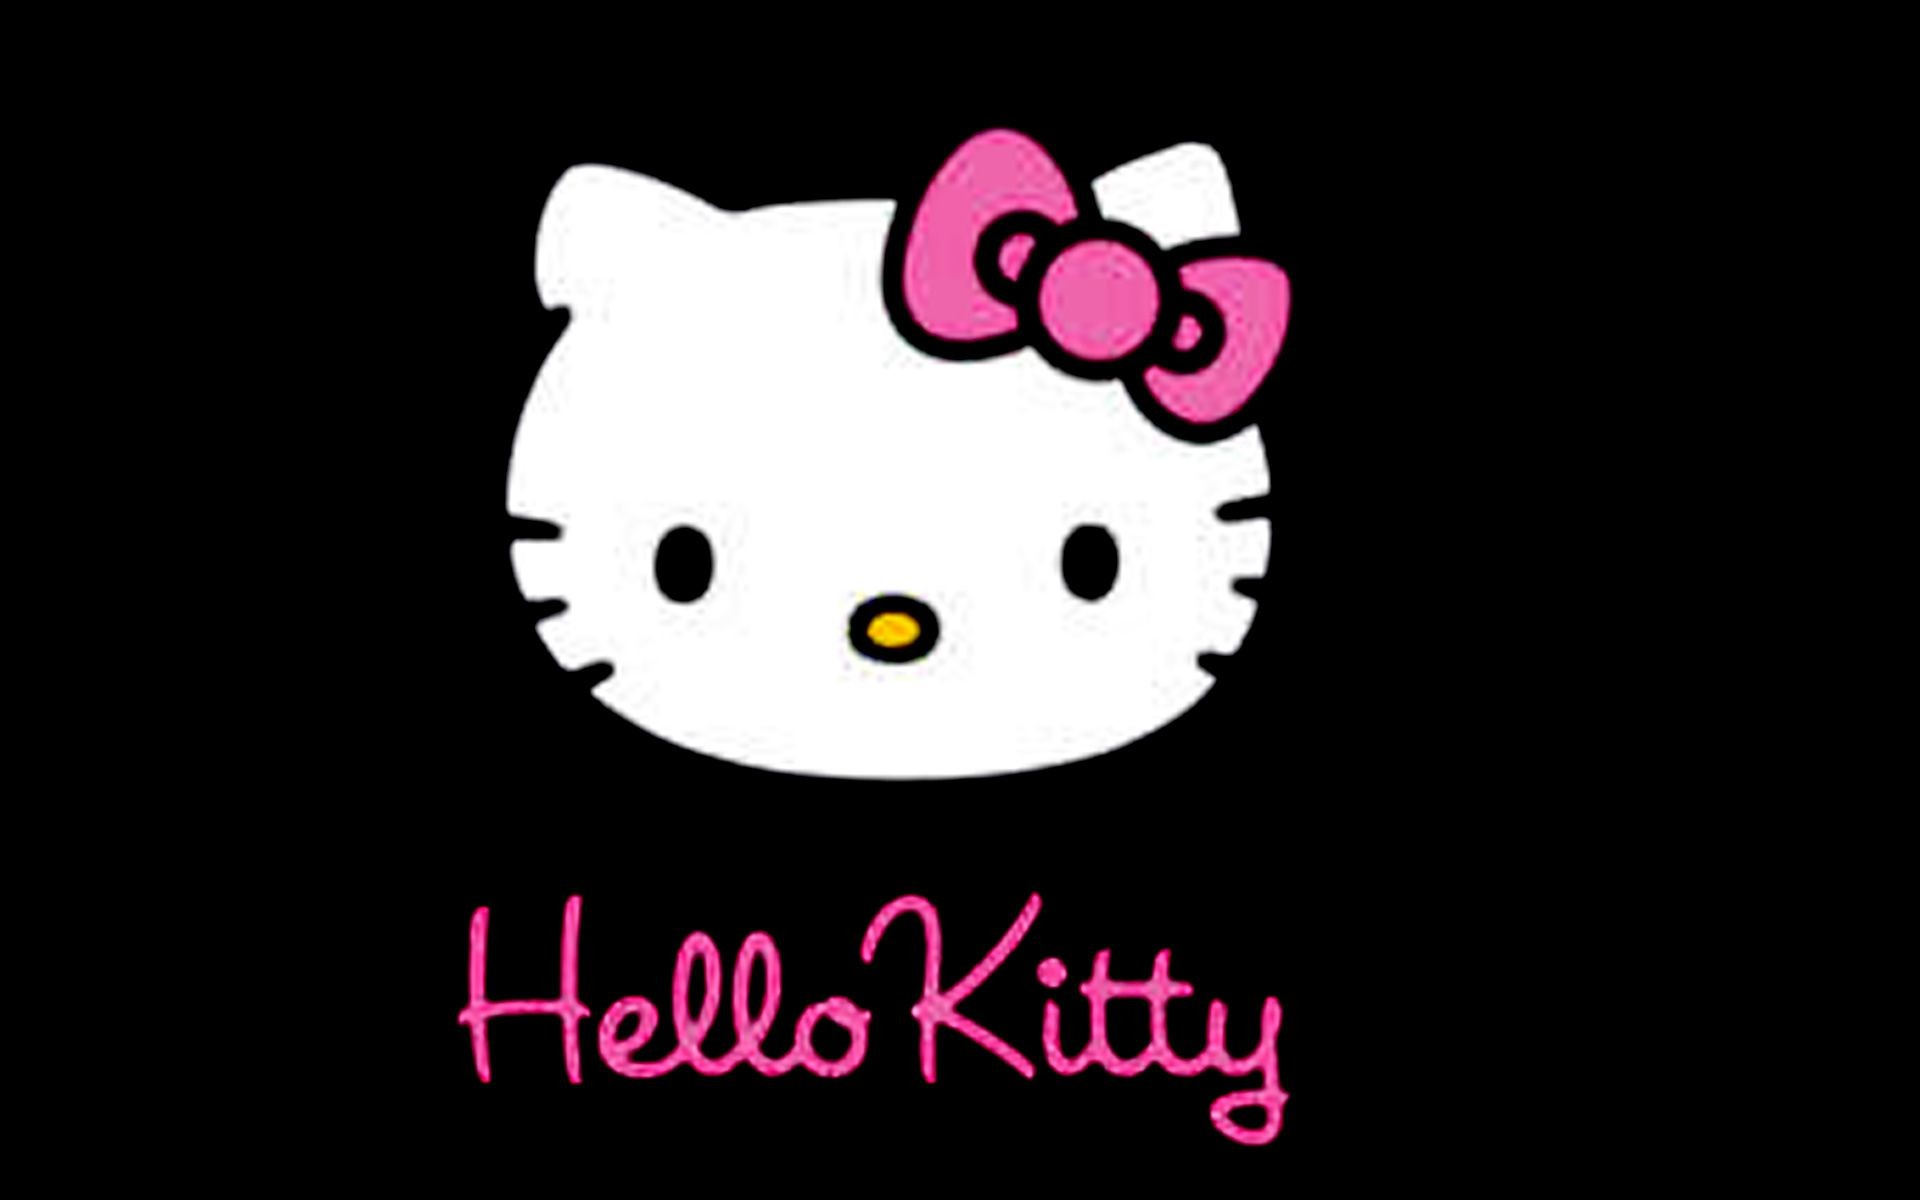 1920x1200 Hello Kitty Pink And Black Love Wallpaper For Android #xekd4 .